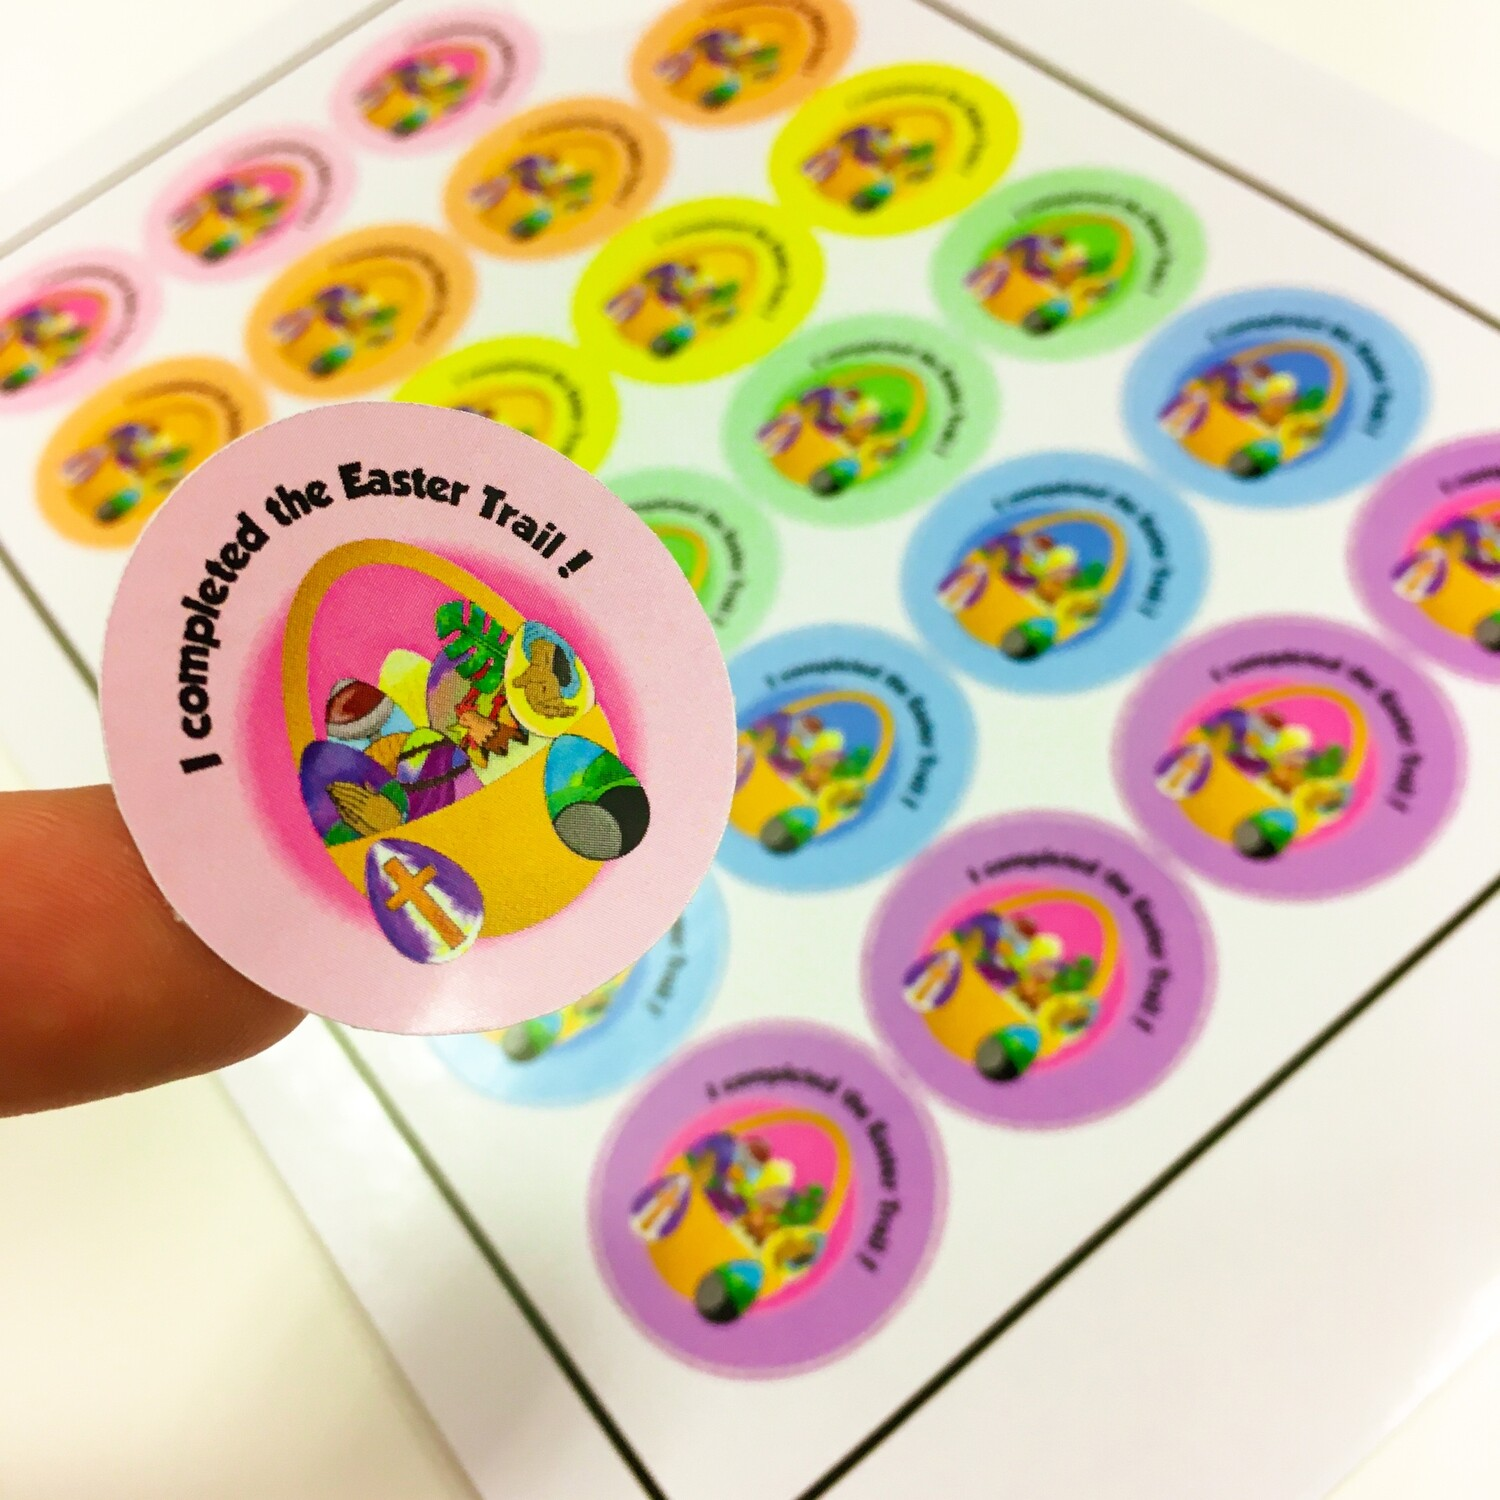 Easter Trail Stickers (Pack of 96)